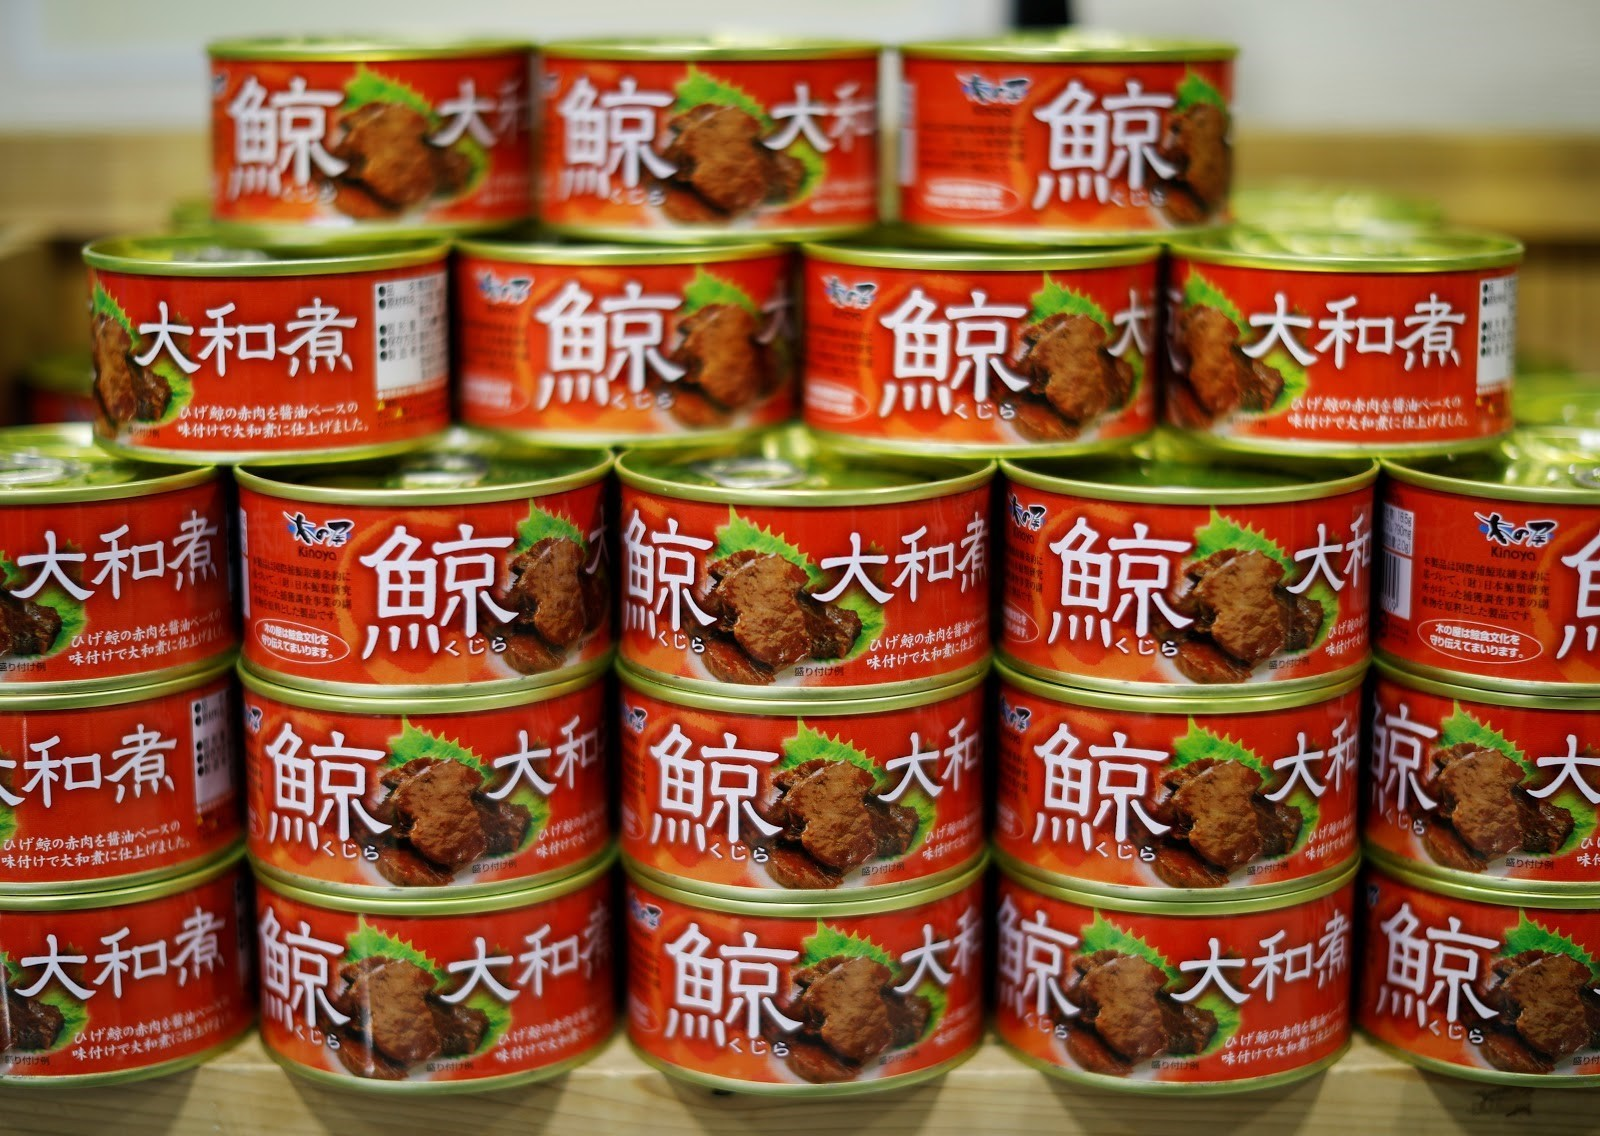 Canned whale meat is displayed at a roadside store in Japan.